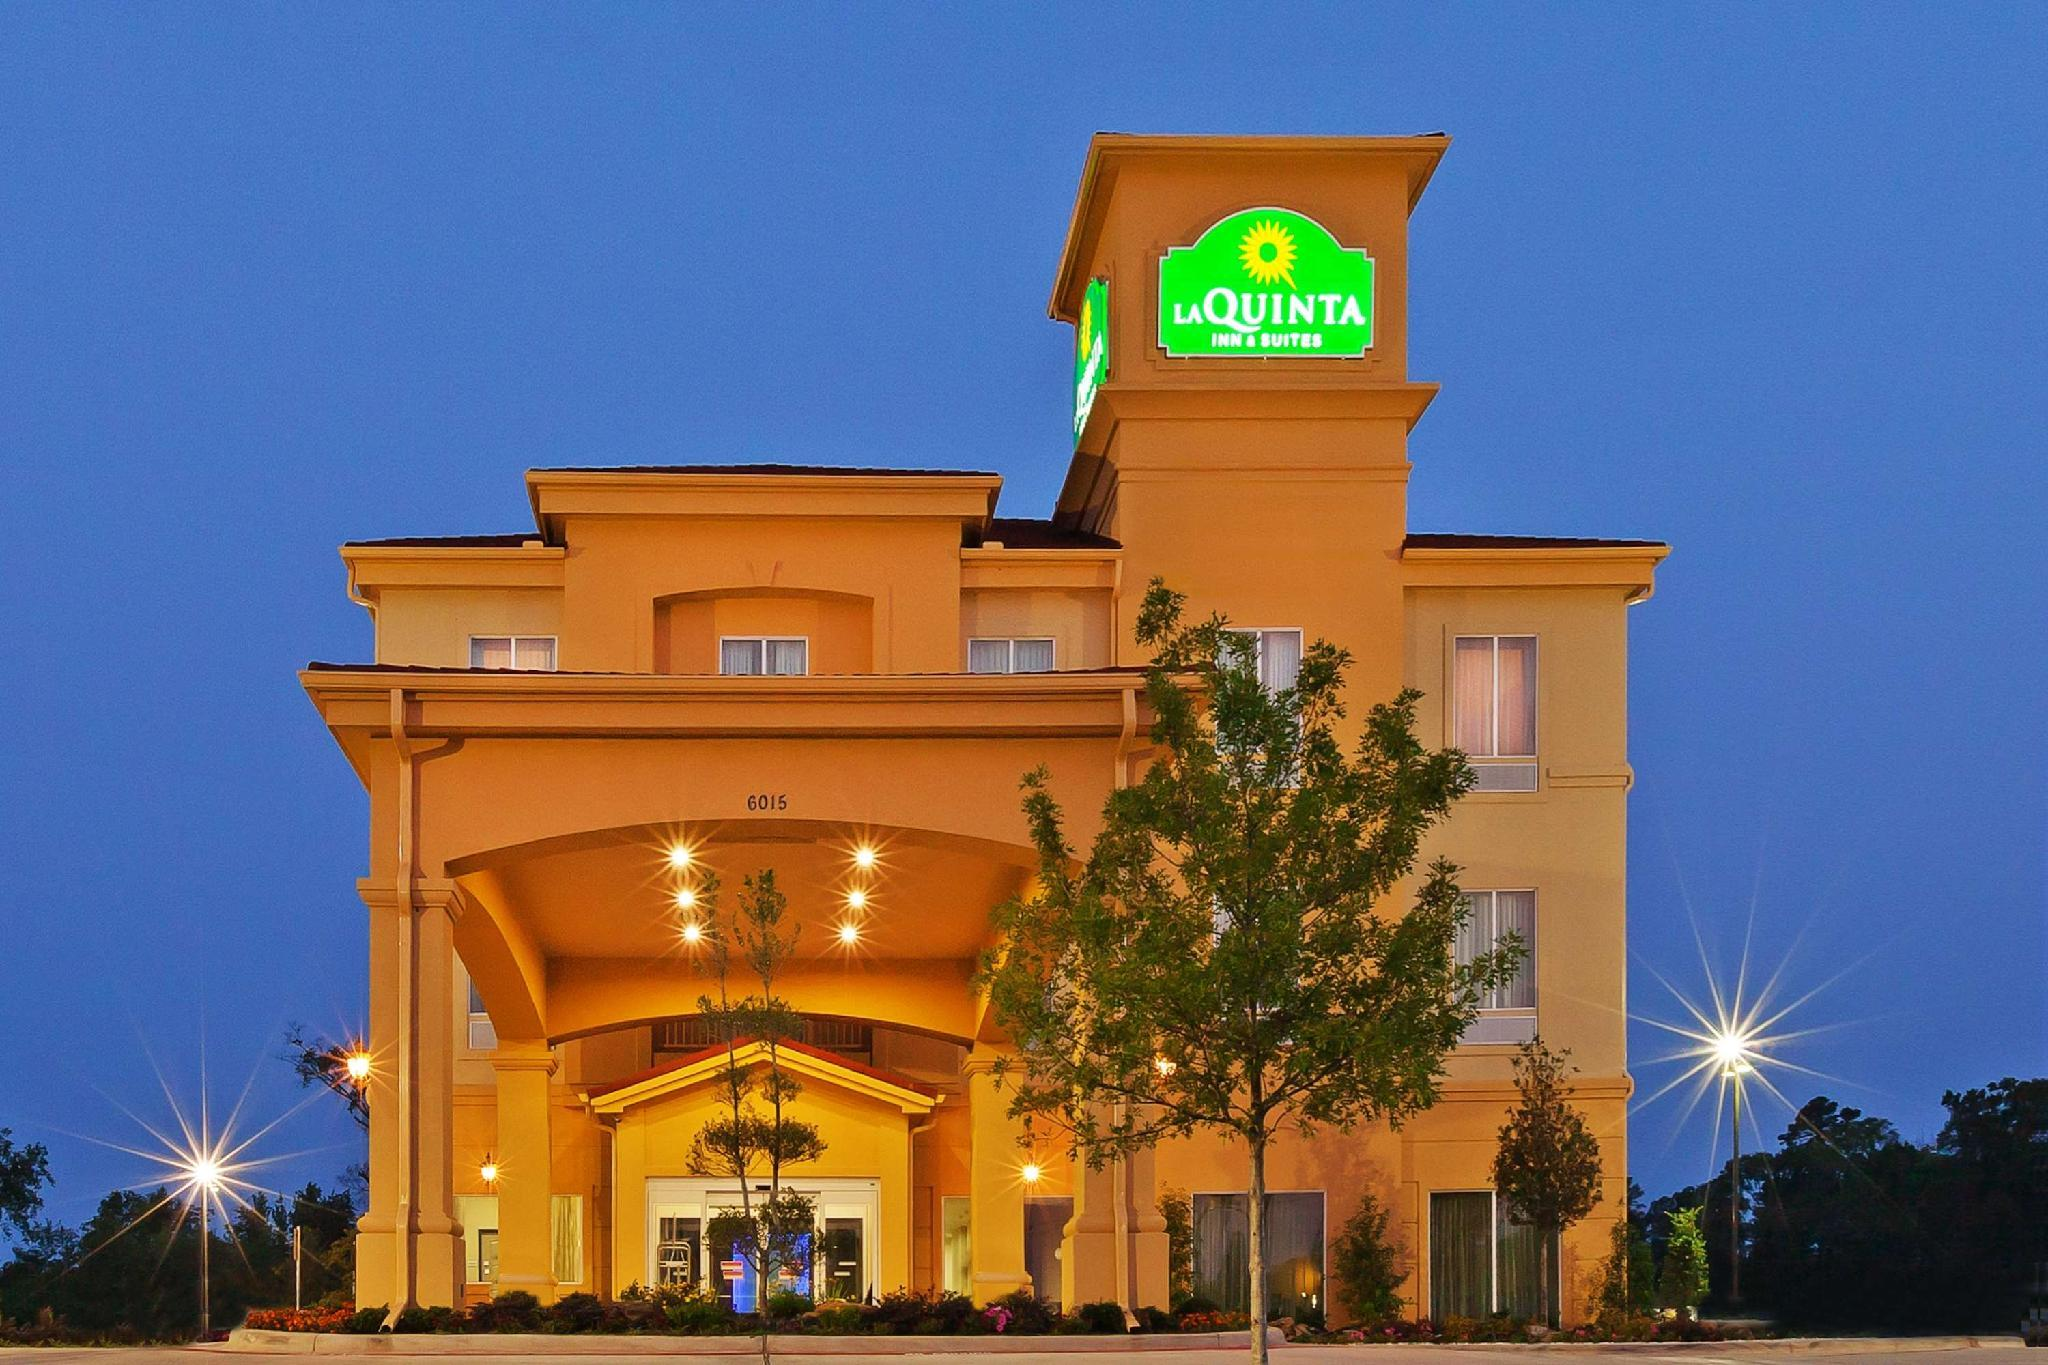 La Quinta Inn And Suites By Wyndham Marshall